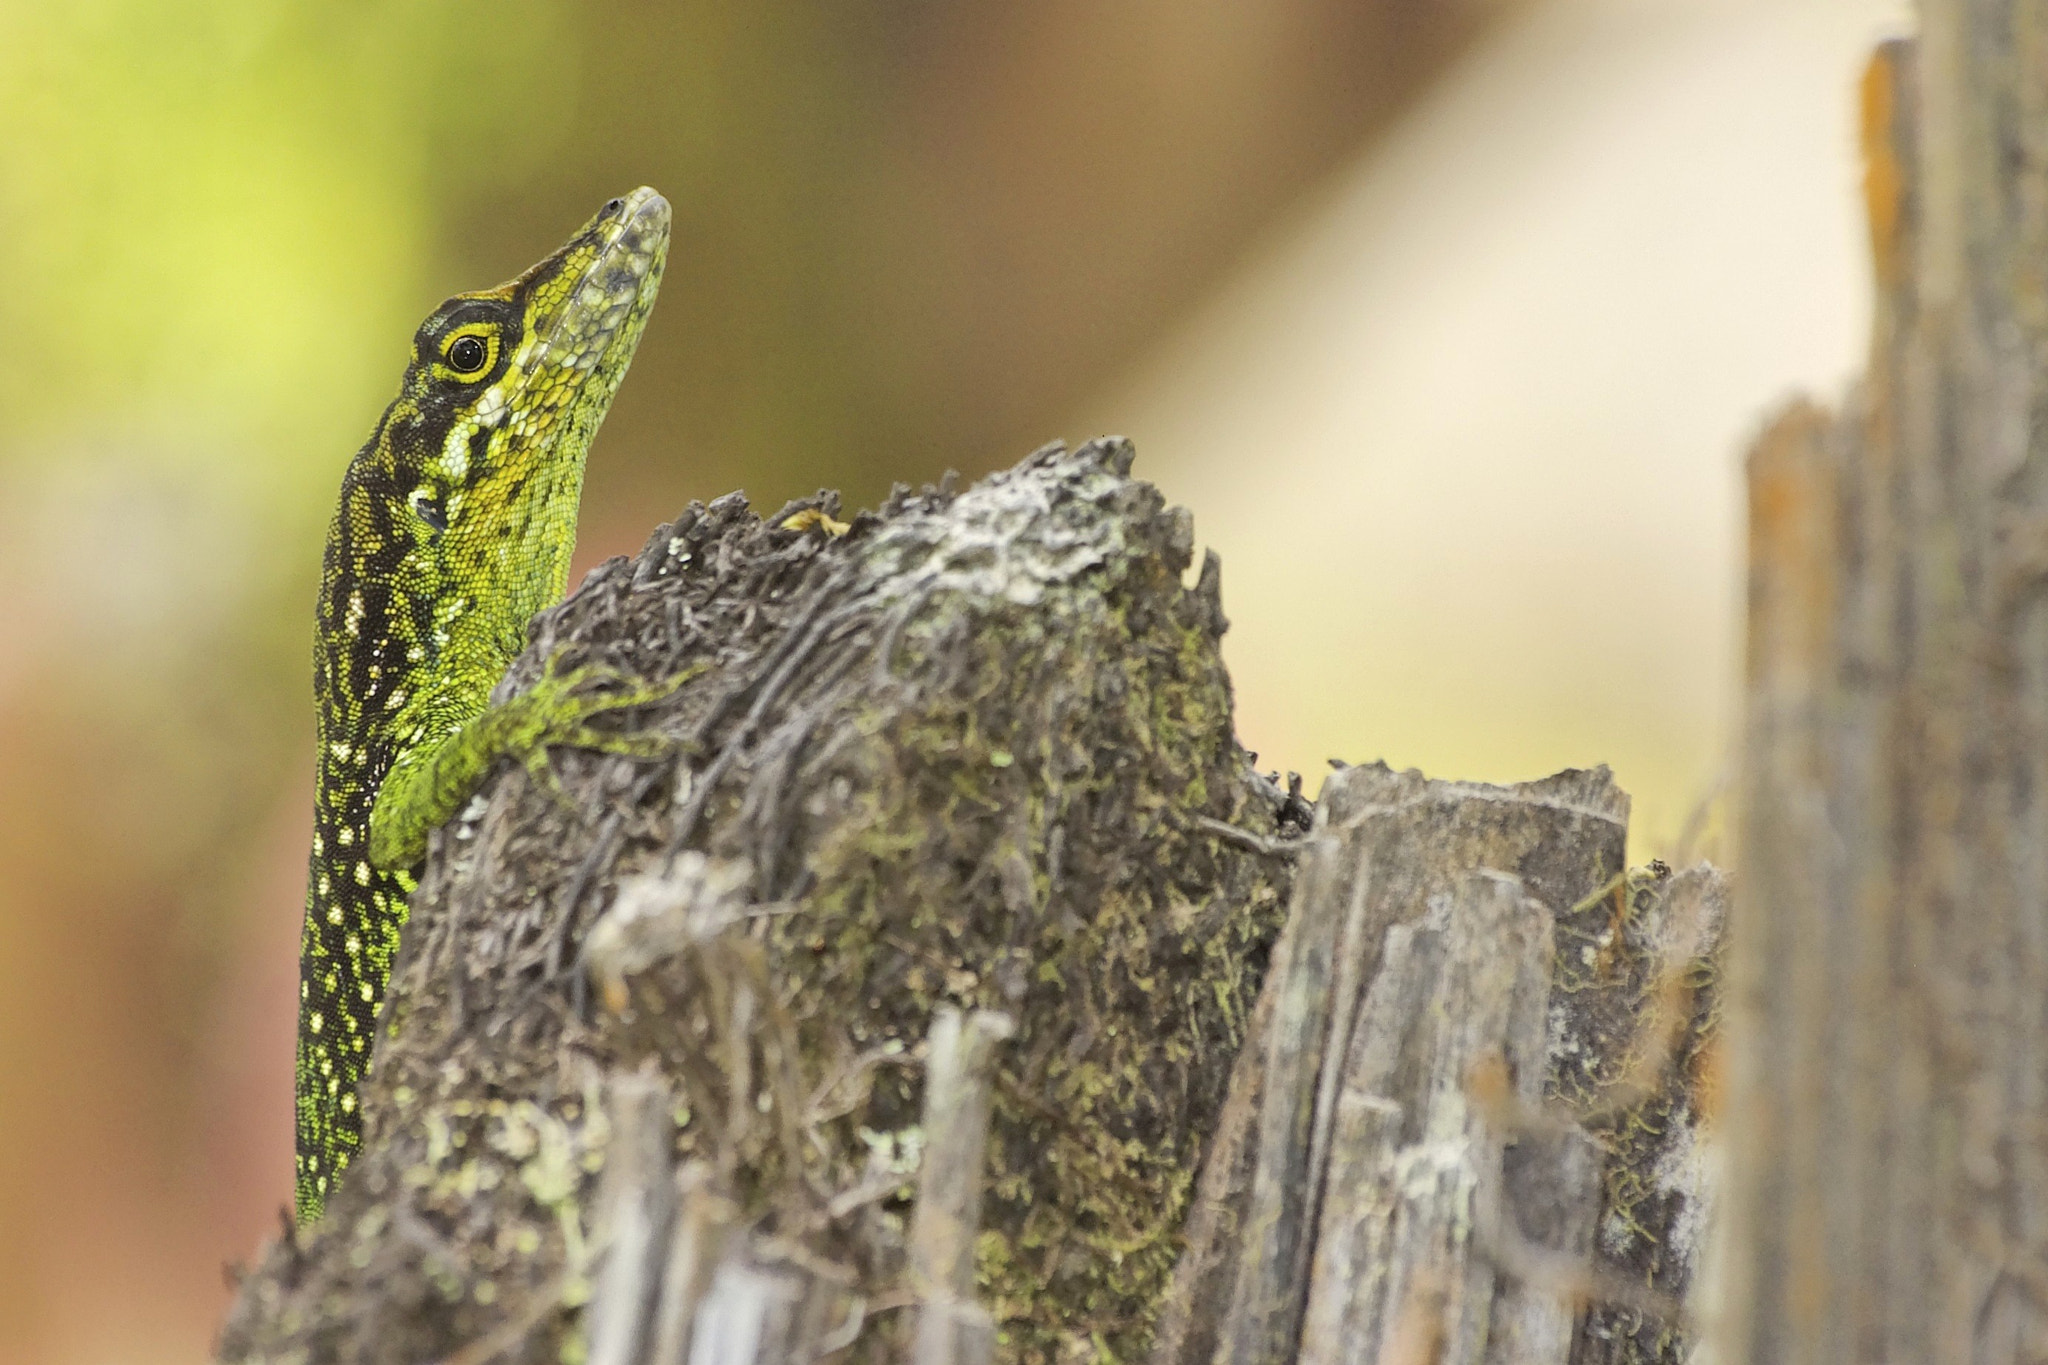 Photograph Lizard by Christophe Candela on 500px